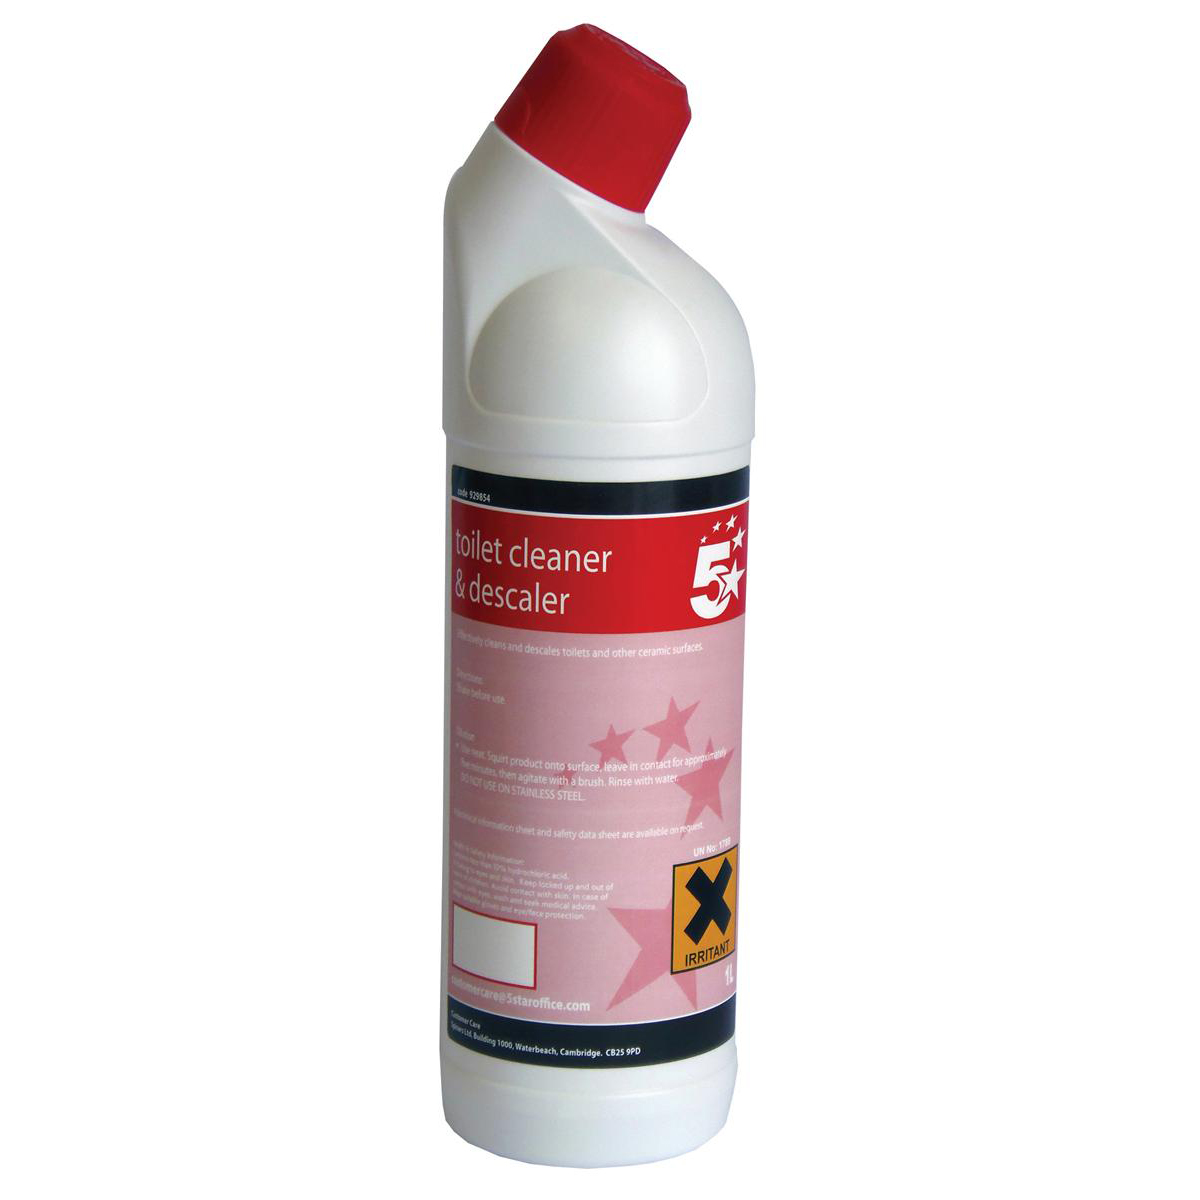 Cleaning Chemicals 5 Star Facilities Toilet Cleaner & Descaler 1 Litre